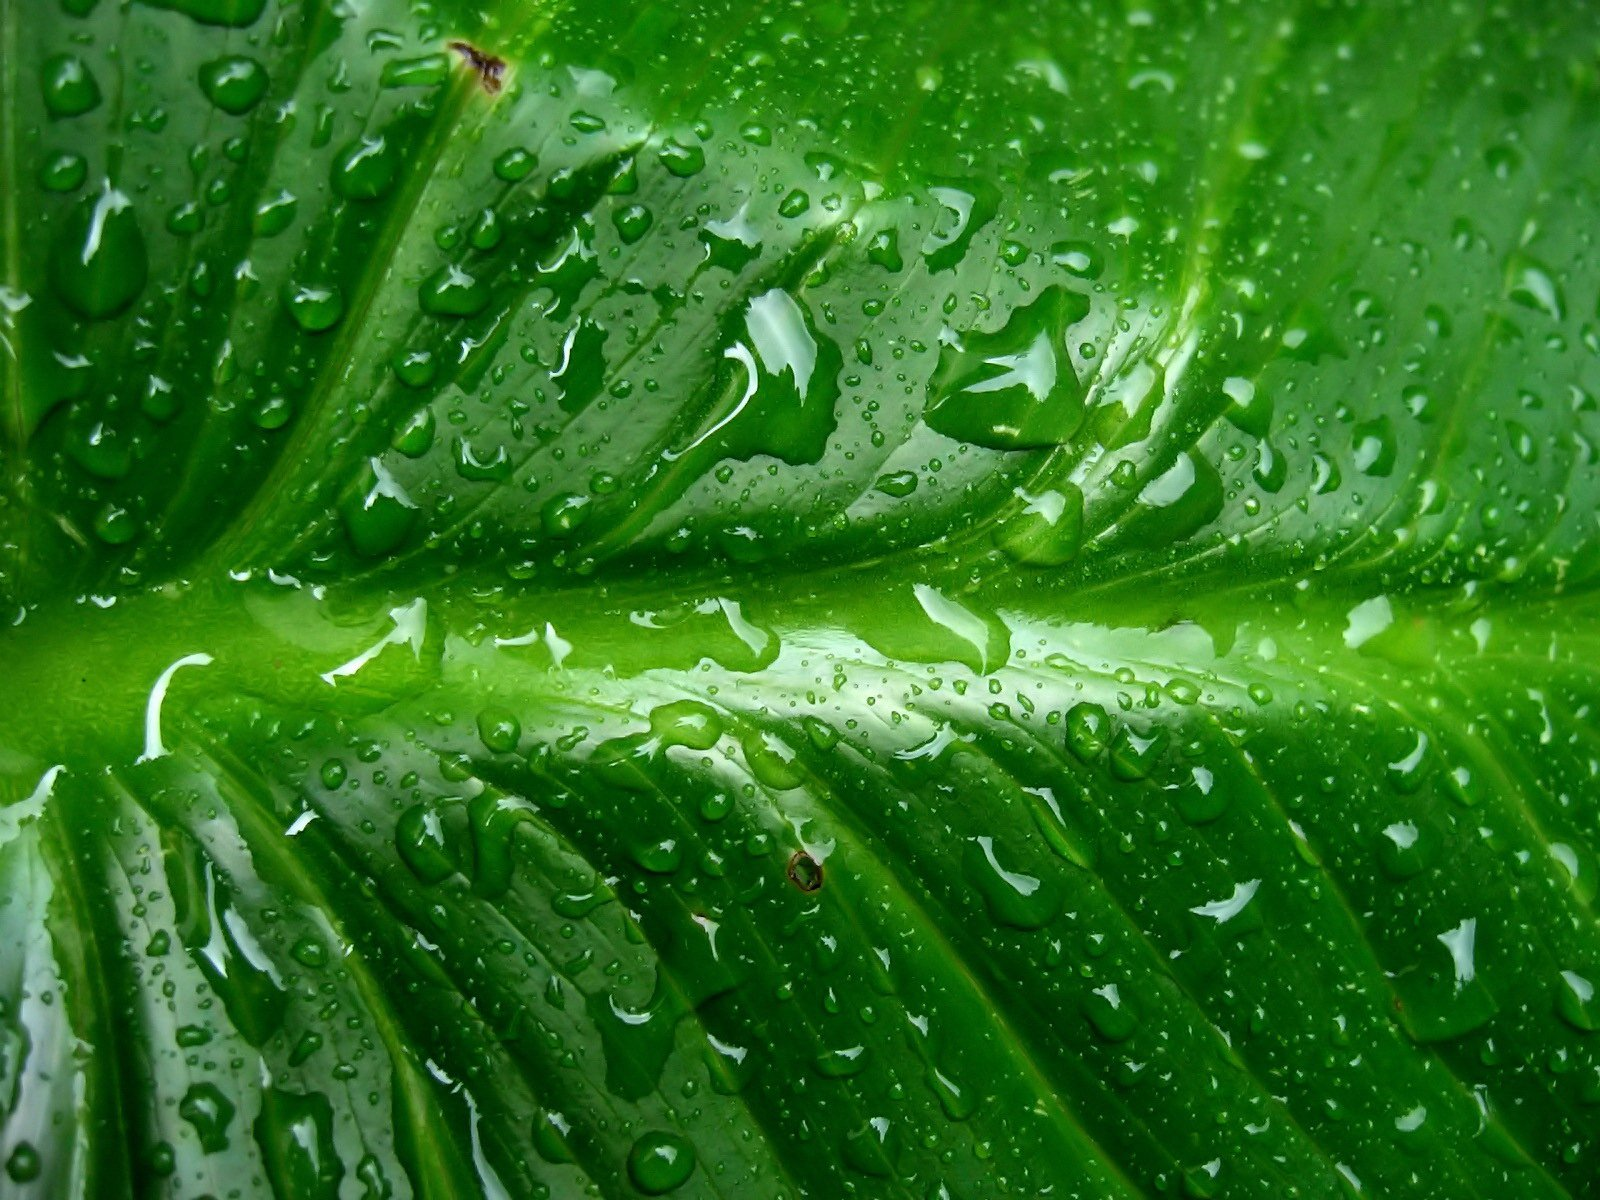 Wallpaper green background - Rain on leaf